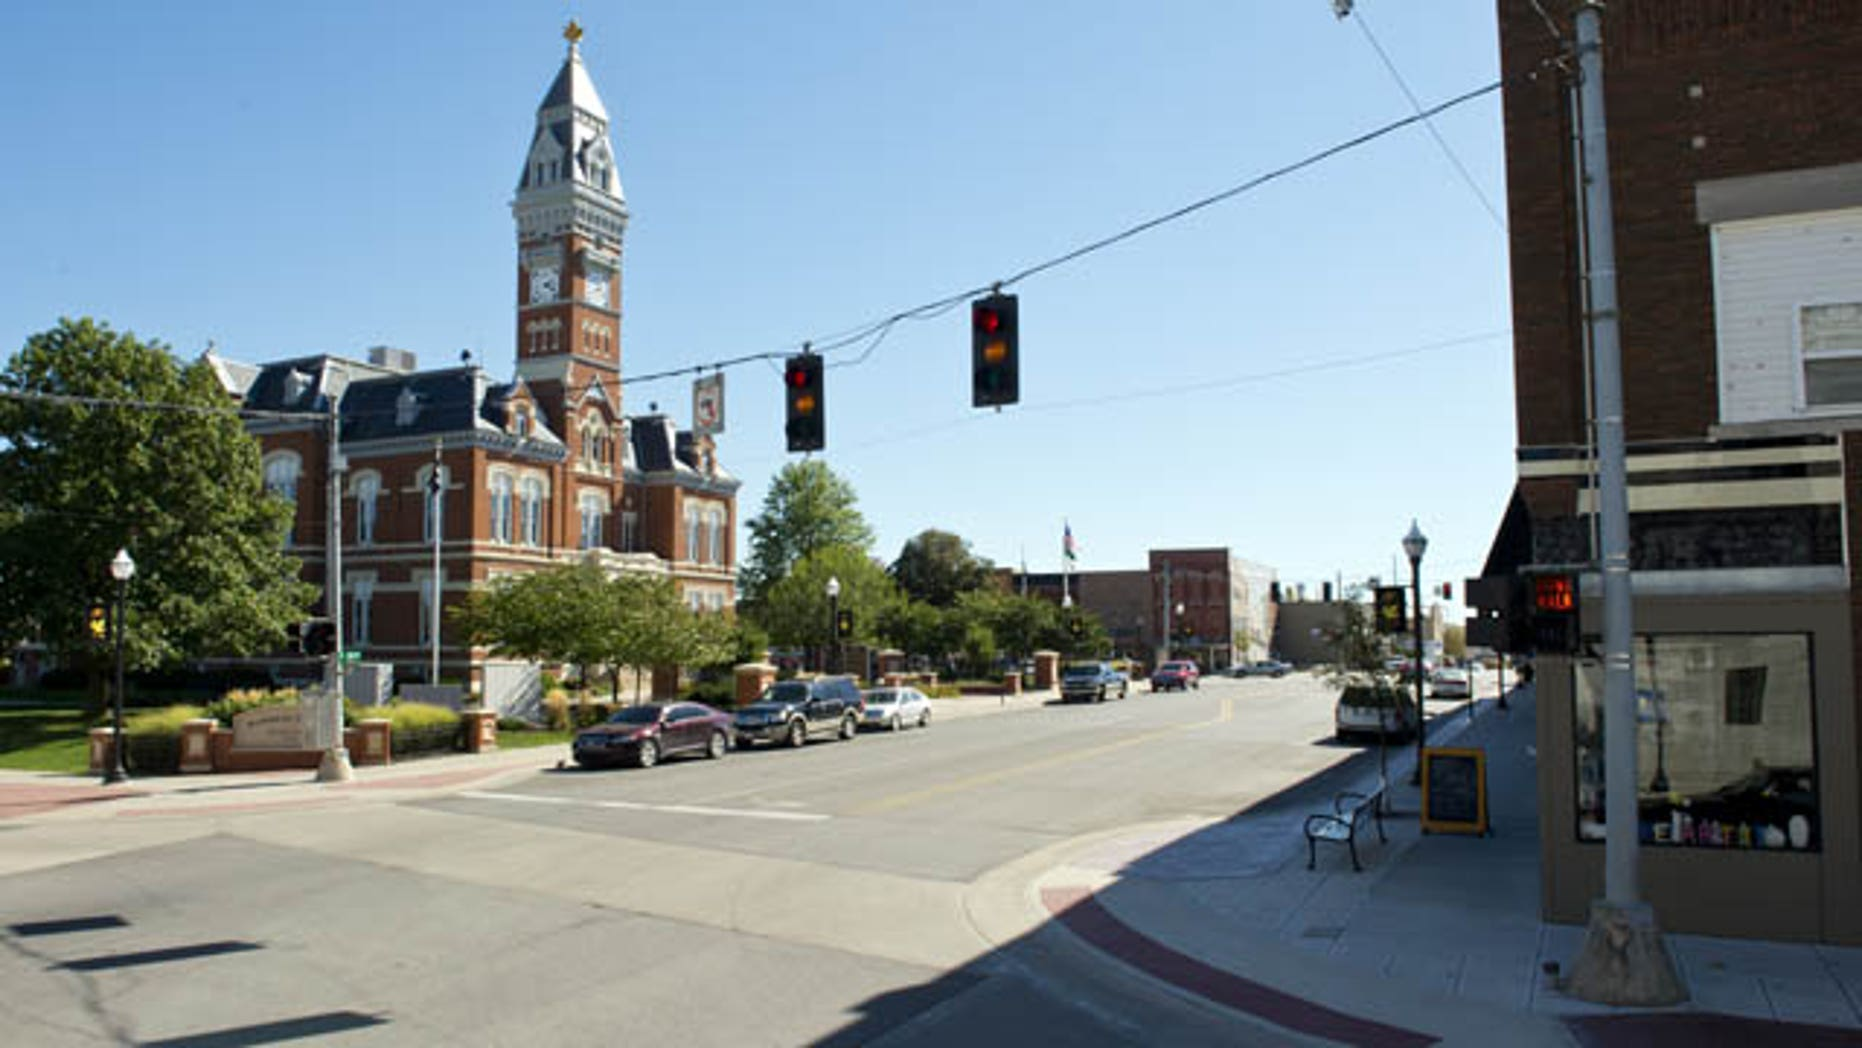 This Oct. 9, 2013 photo shows the Nodaway County Courthouse in downtown Maryville, Mo. (AP Photo/The Kansas City Star, David Eulitt)